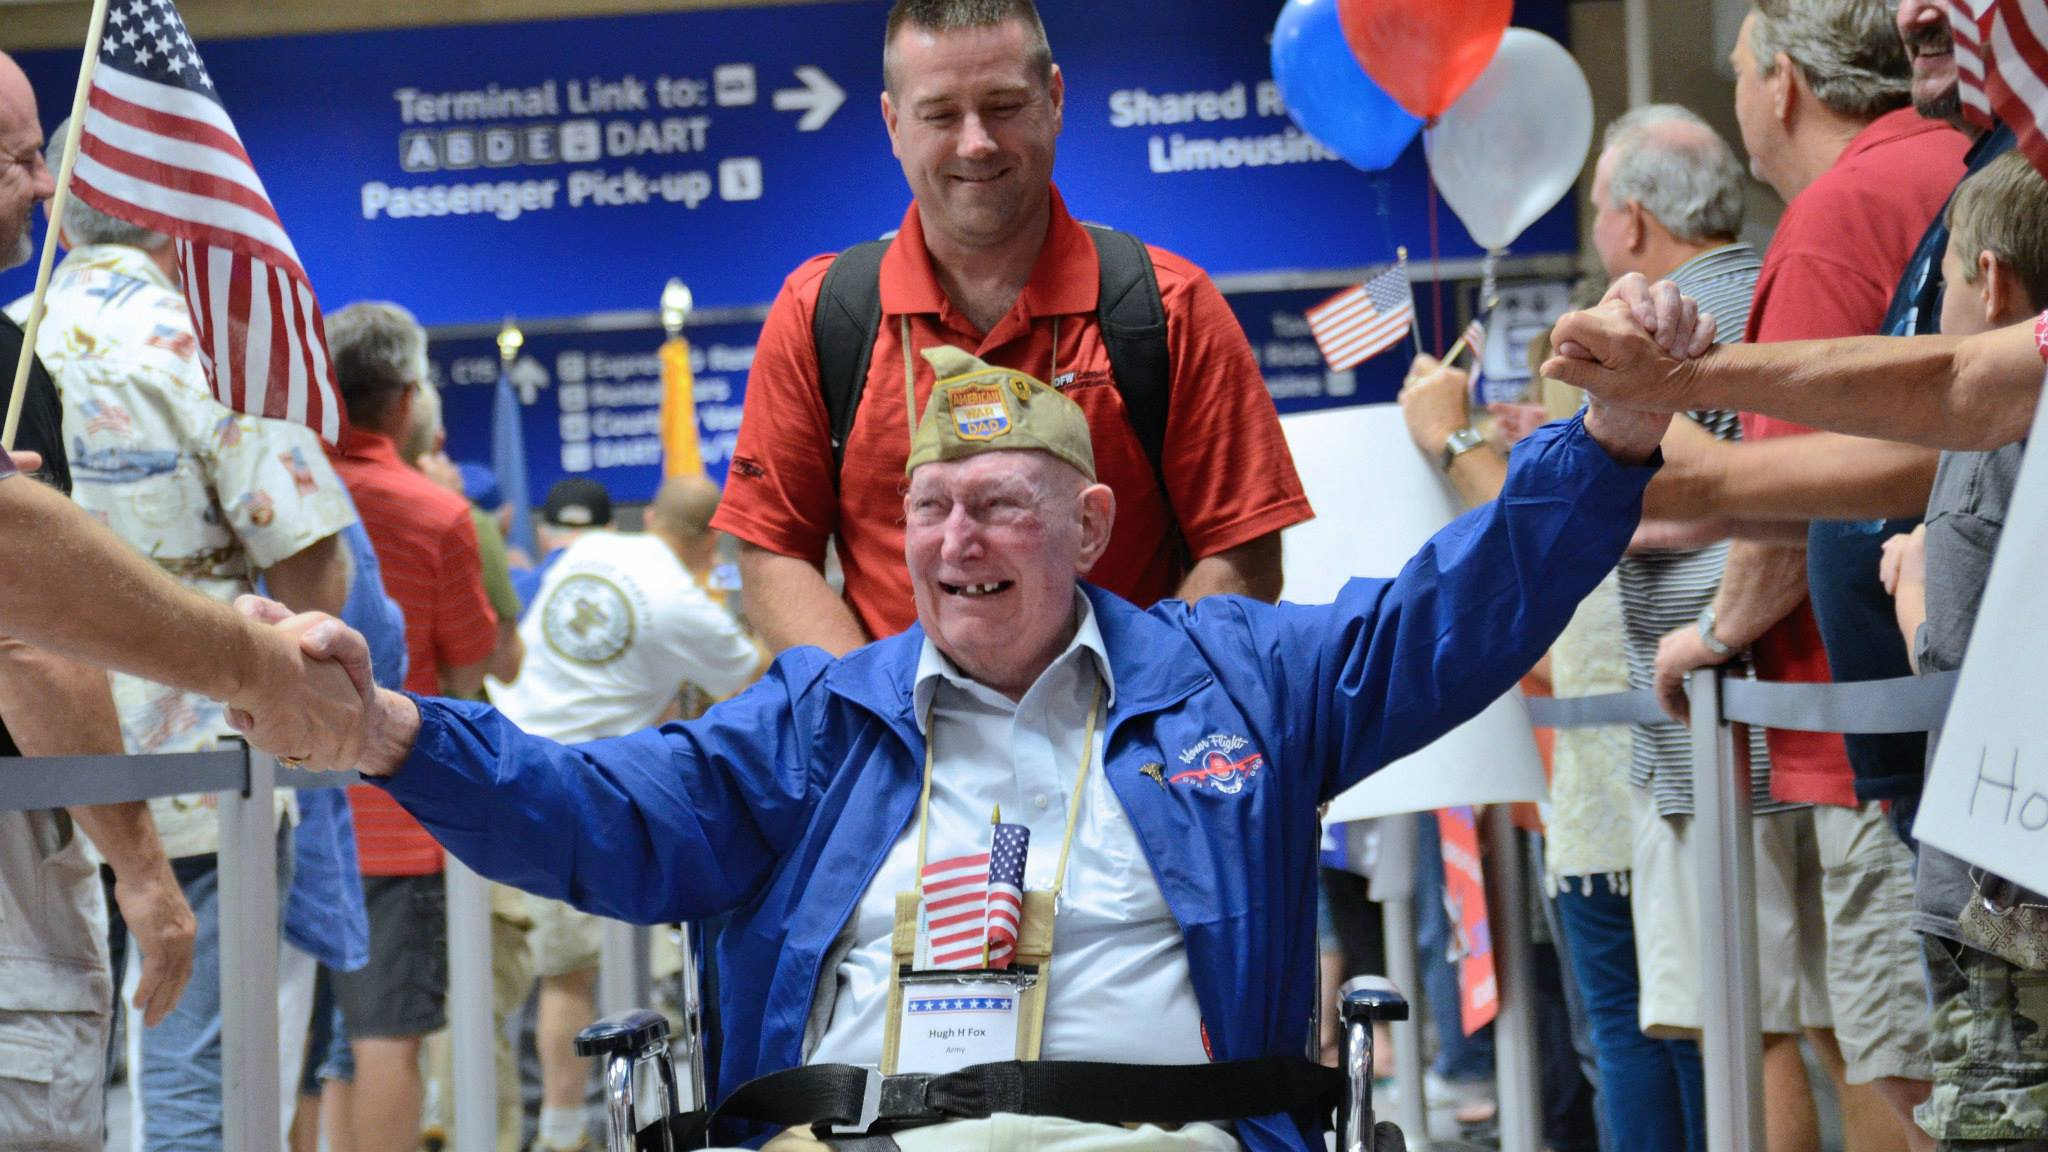 Honor Flight DFW 9th Annual Golf Classic gallery image #18